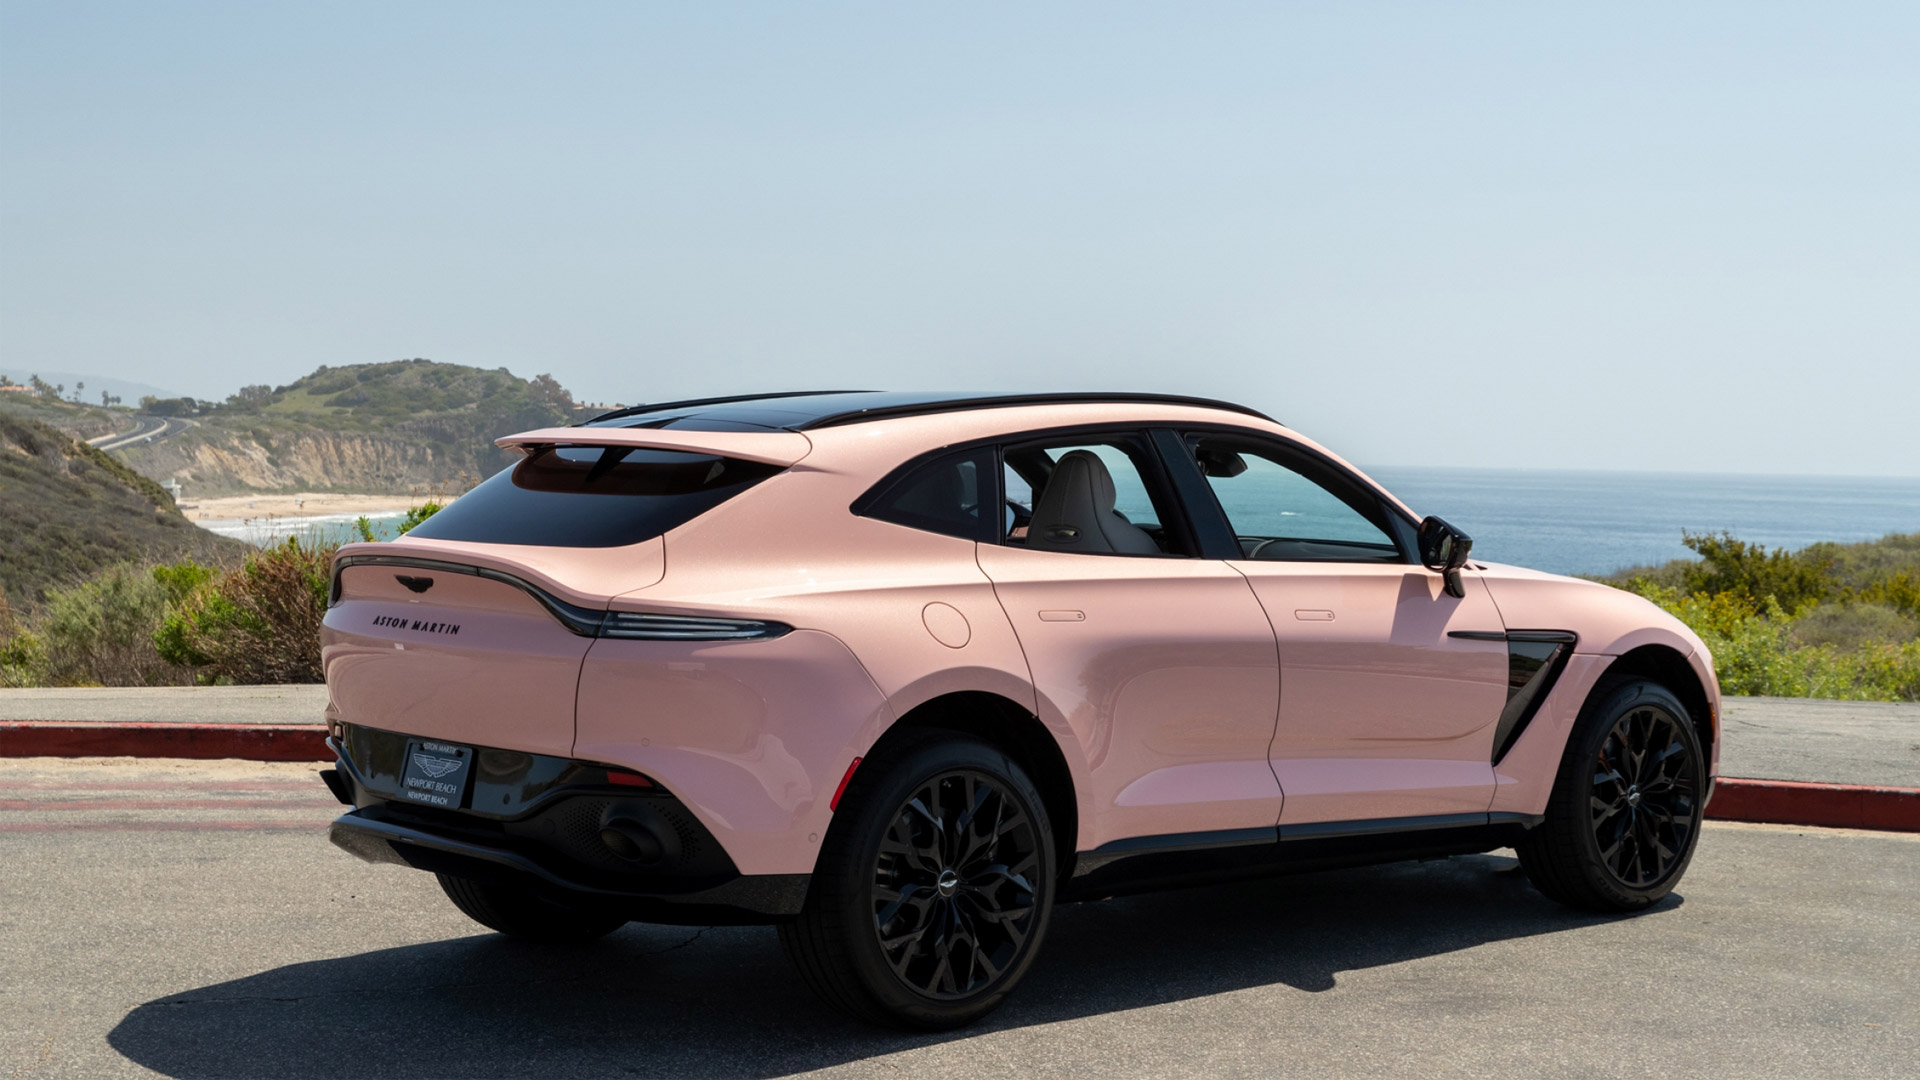 The Aston Martin DBX in Vibrant Coral Angled Rear View